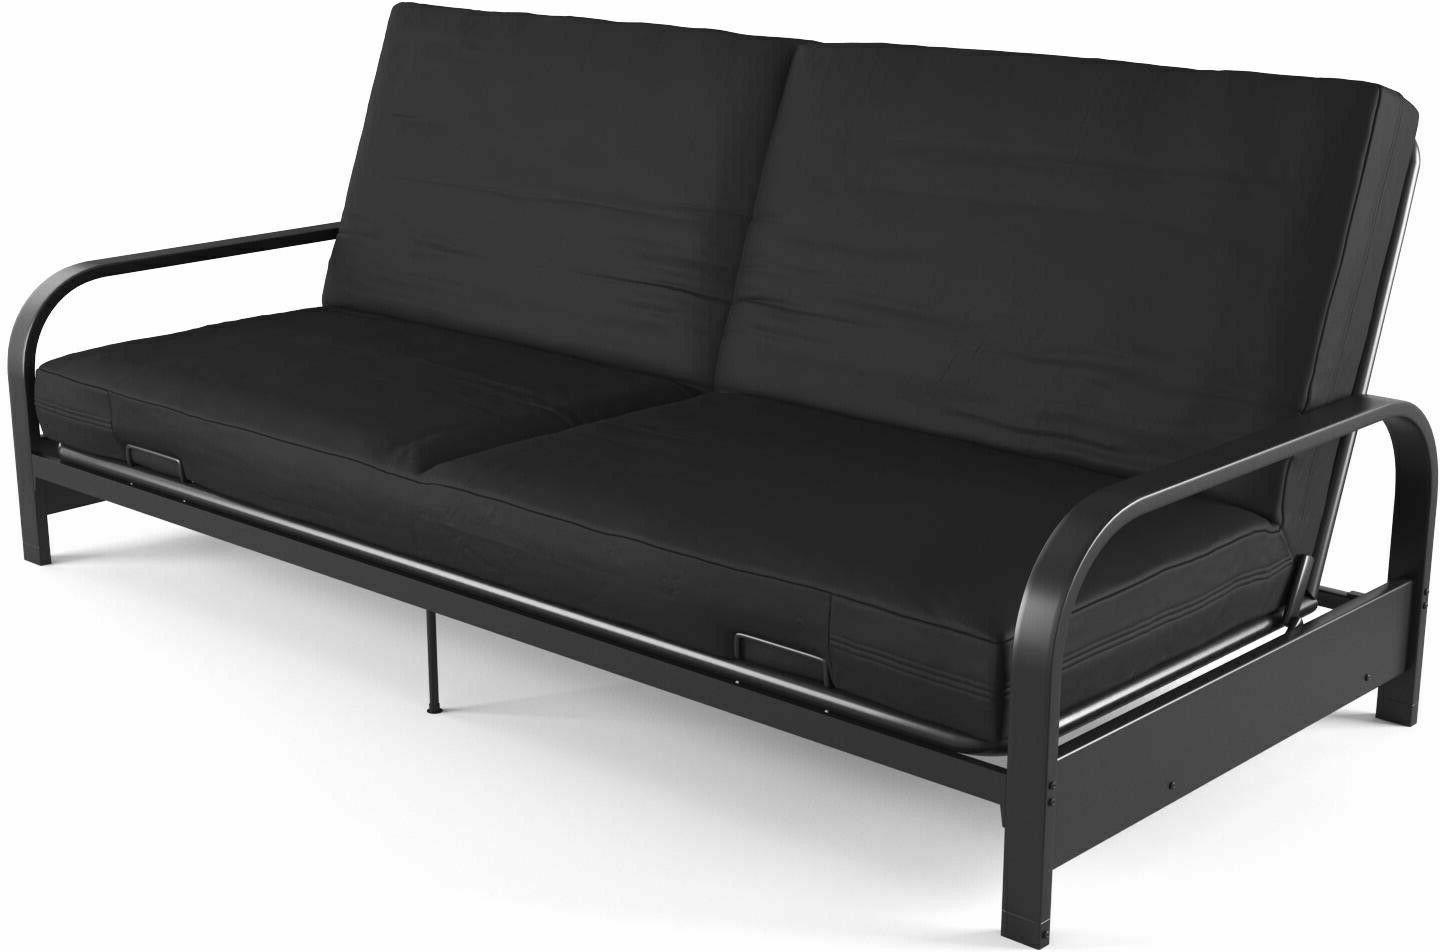 Full Futon Sofa And Convertible Couch